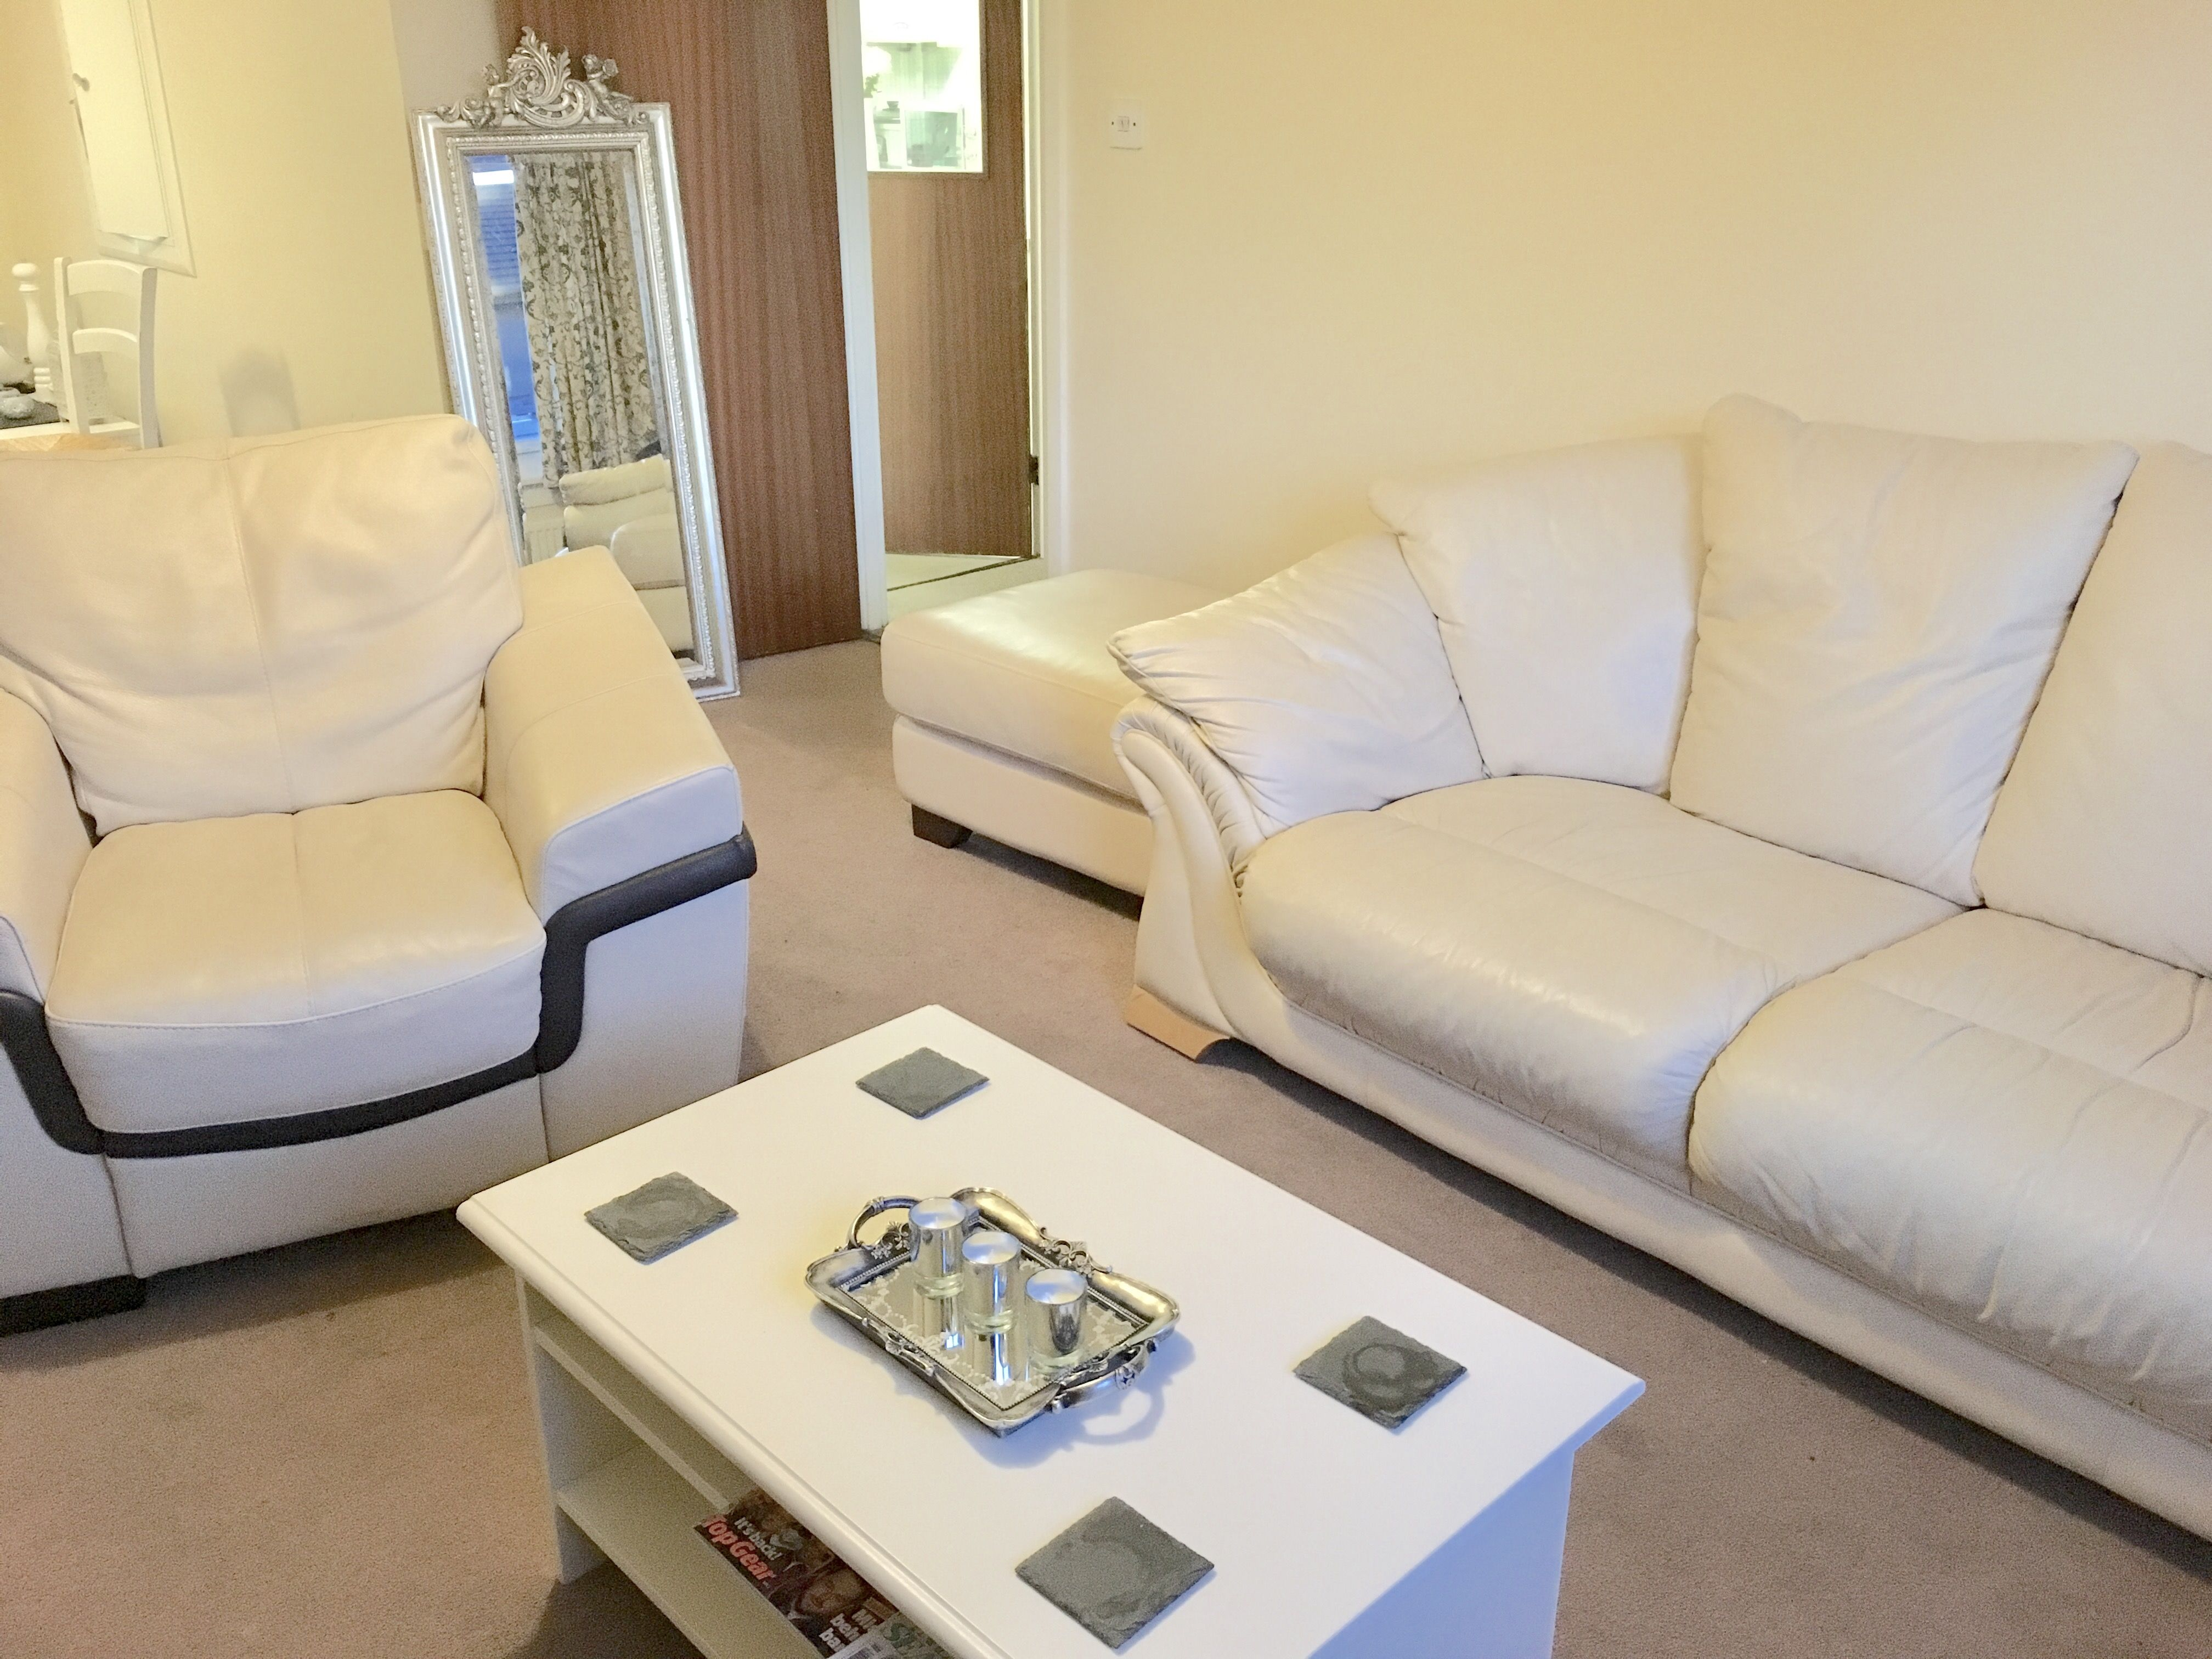 Our lounge with a statement coffee table mirror tray